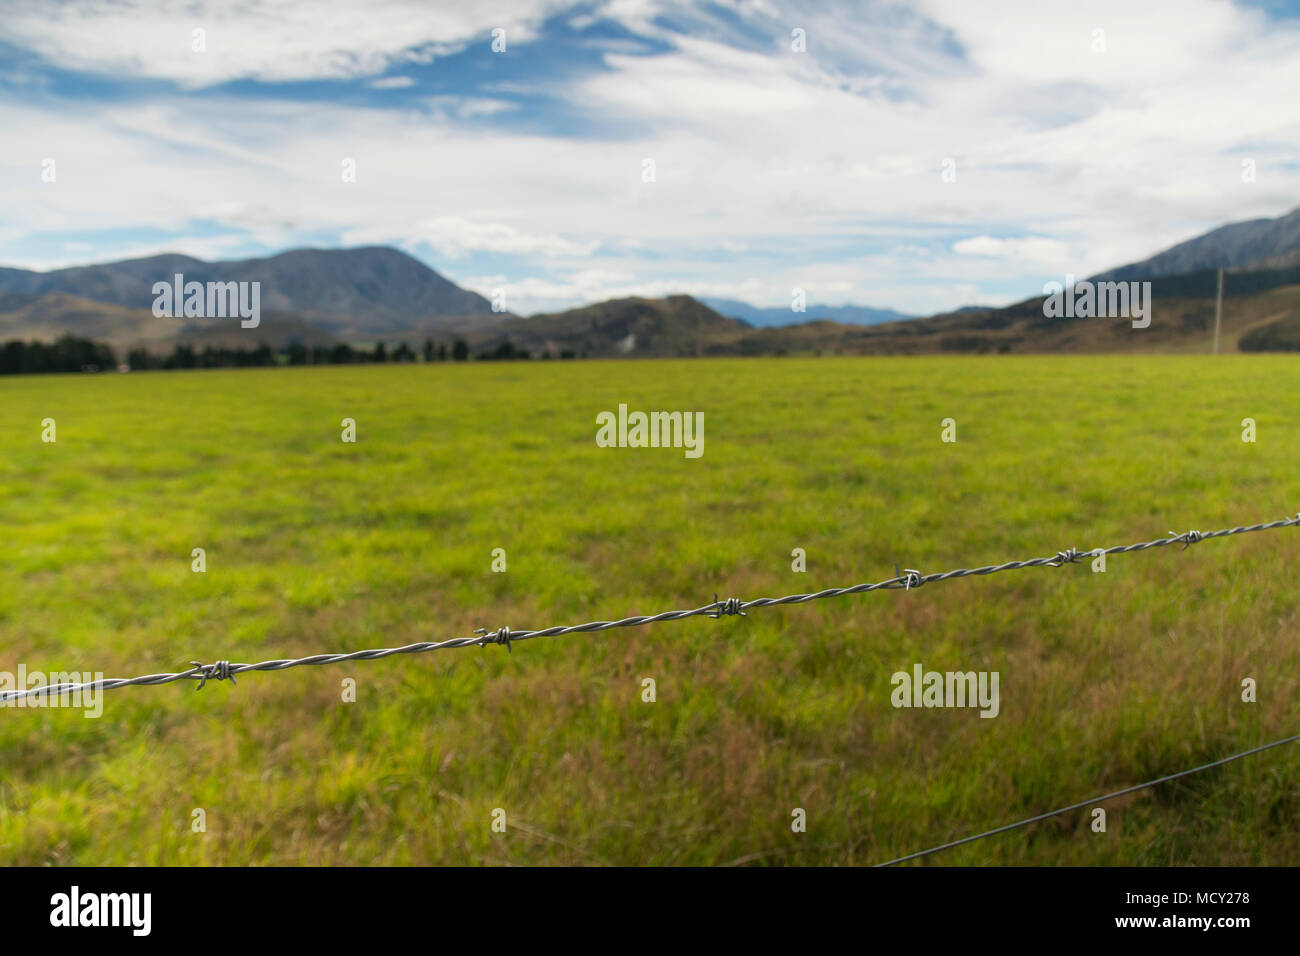 Barbed wire fence around a paddock in Canterbury, South Island of New Zealand - Stock Image